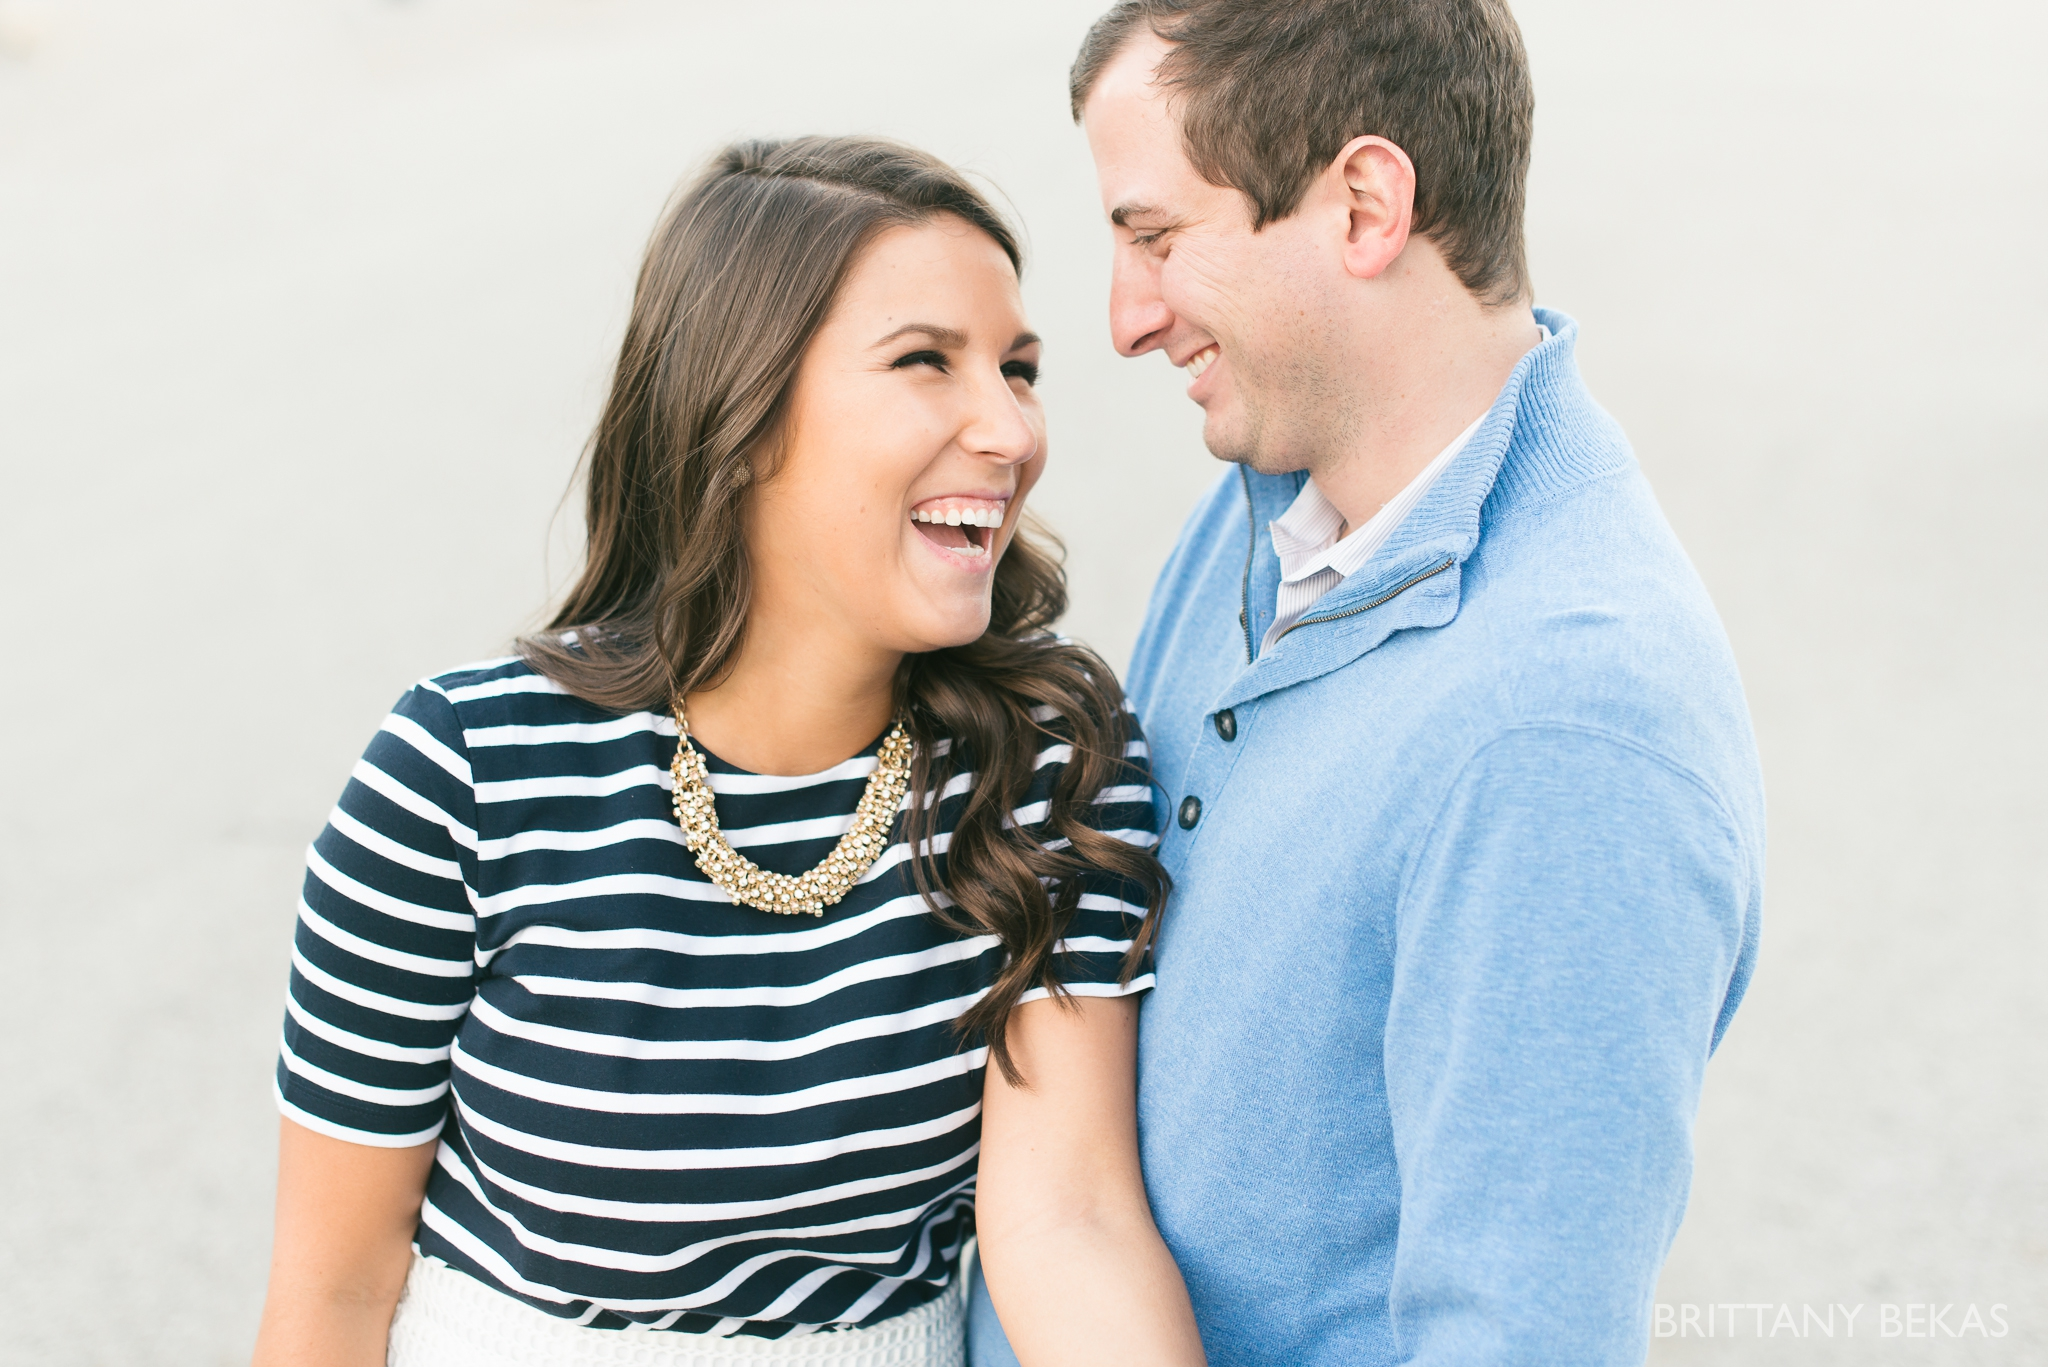 Chicago Engagement Lincoln Park Engagement Photos - Brittany Bekas Photography_0030